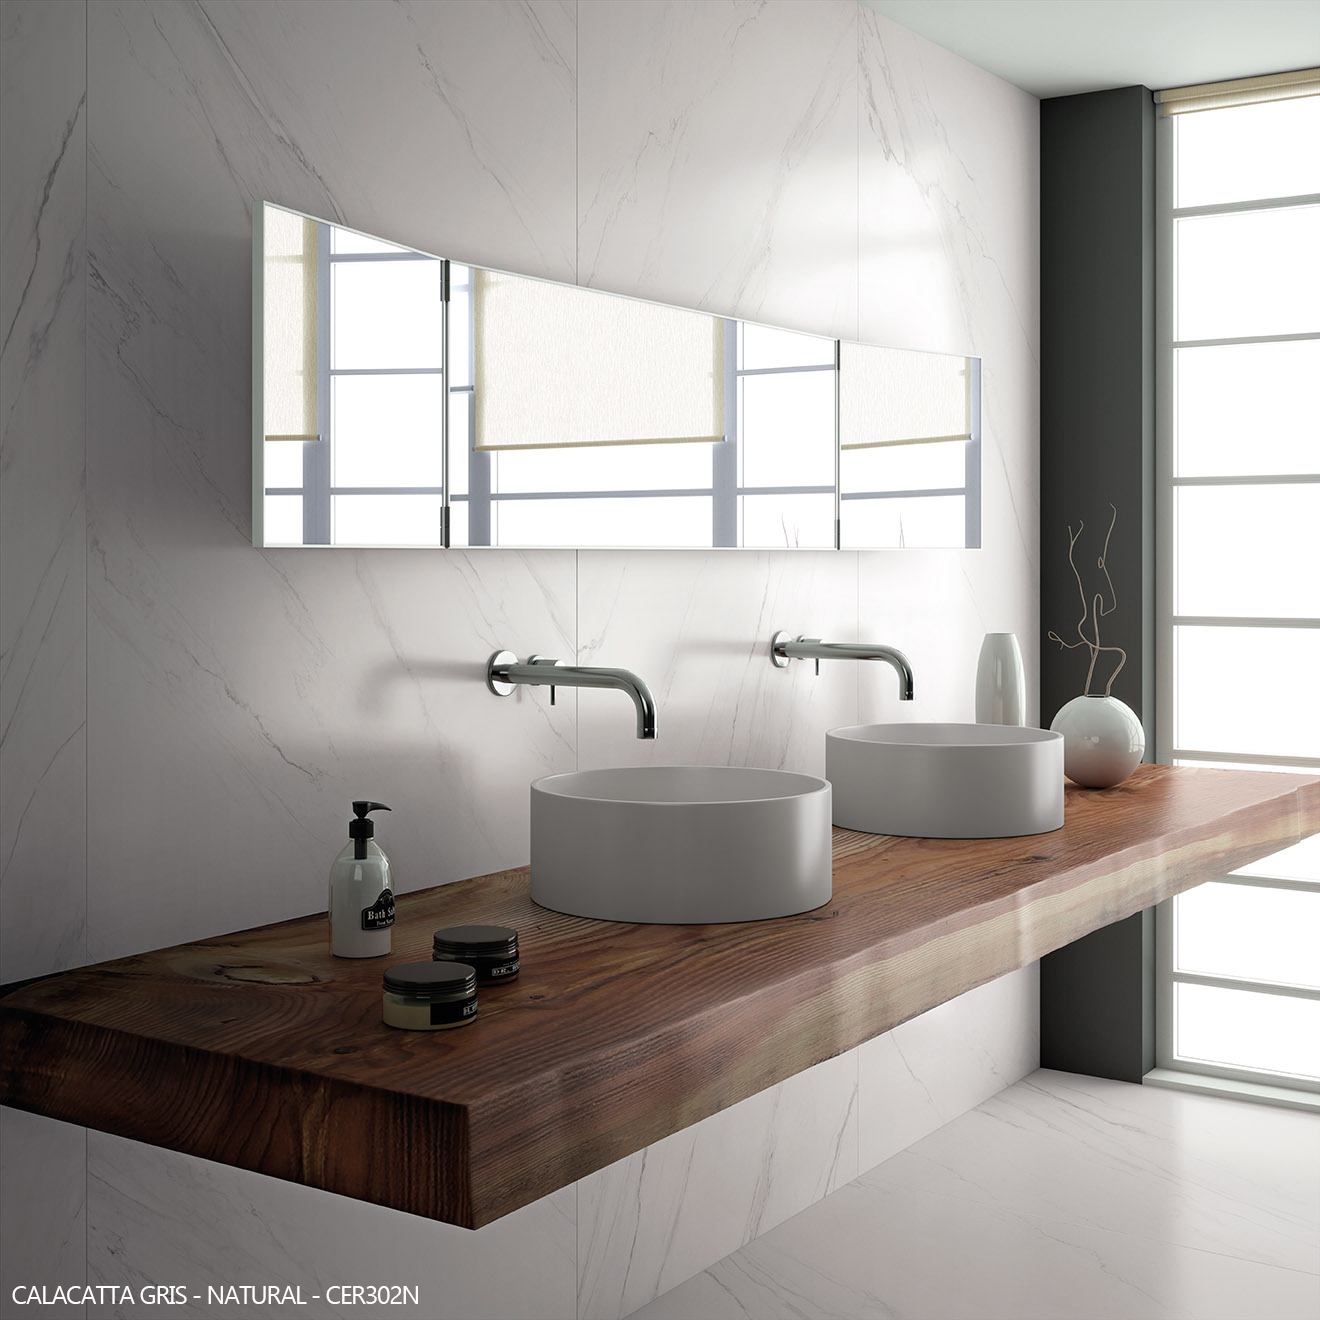 Ceralsio Calacatta Gris white vein floor and wall tiles with his and hers sink